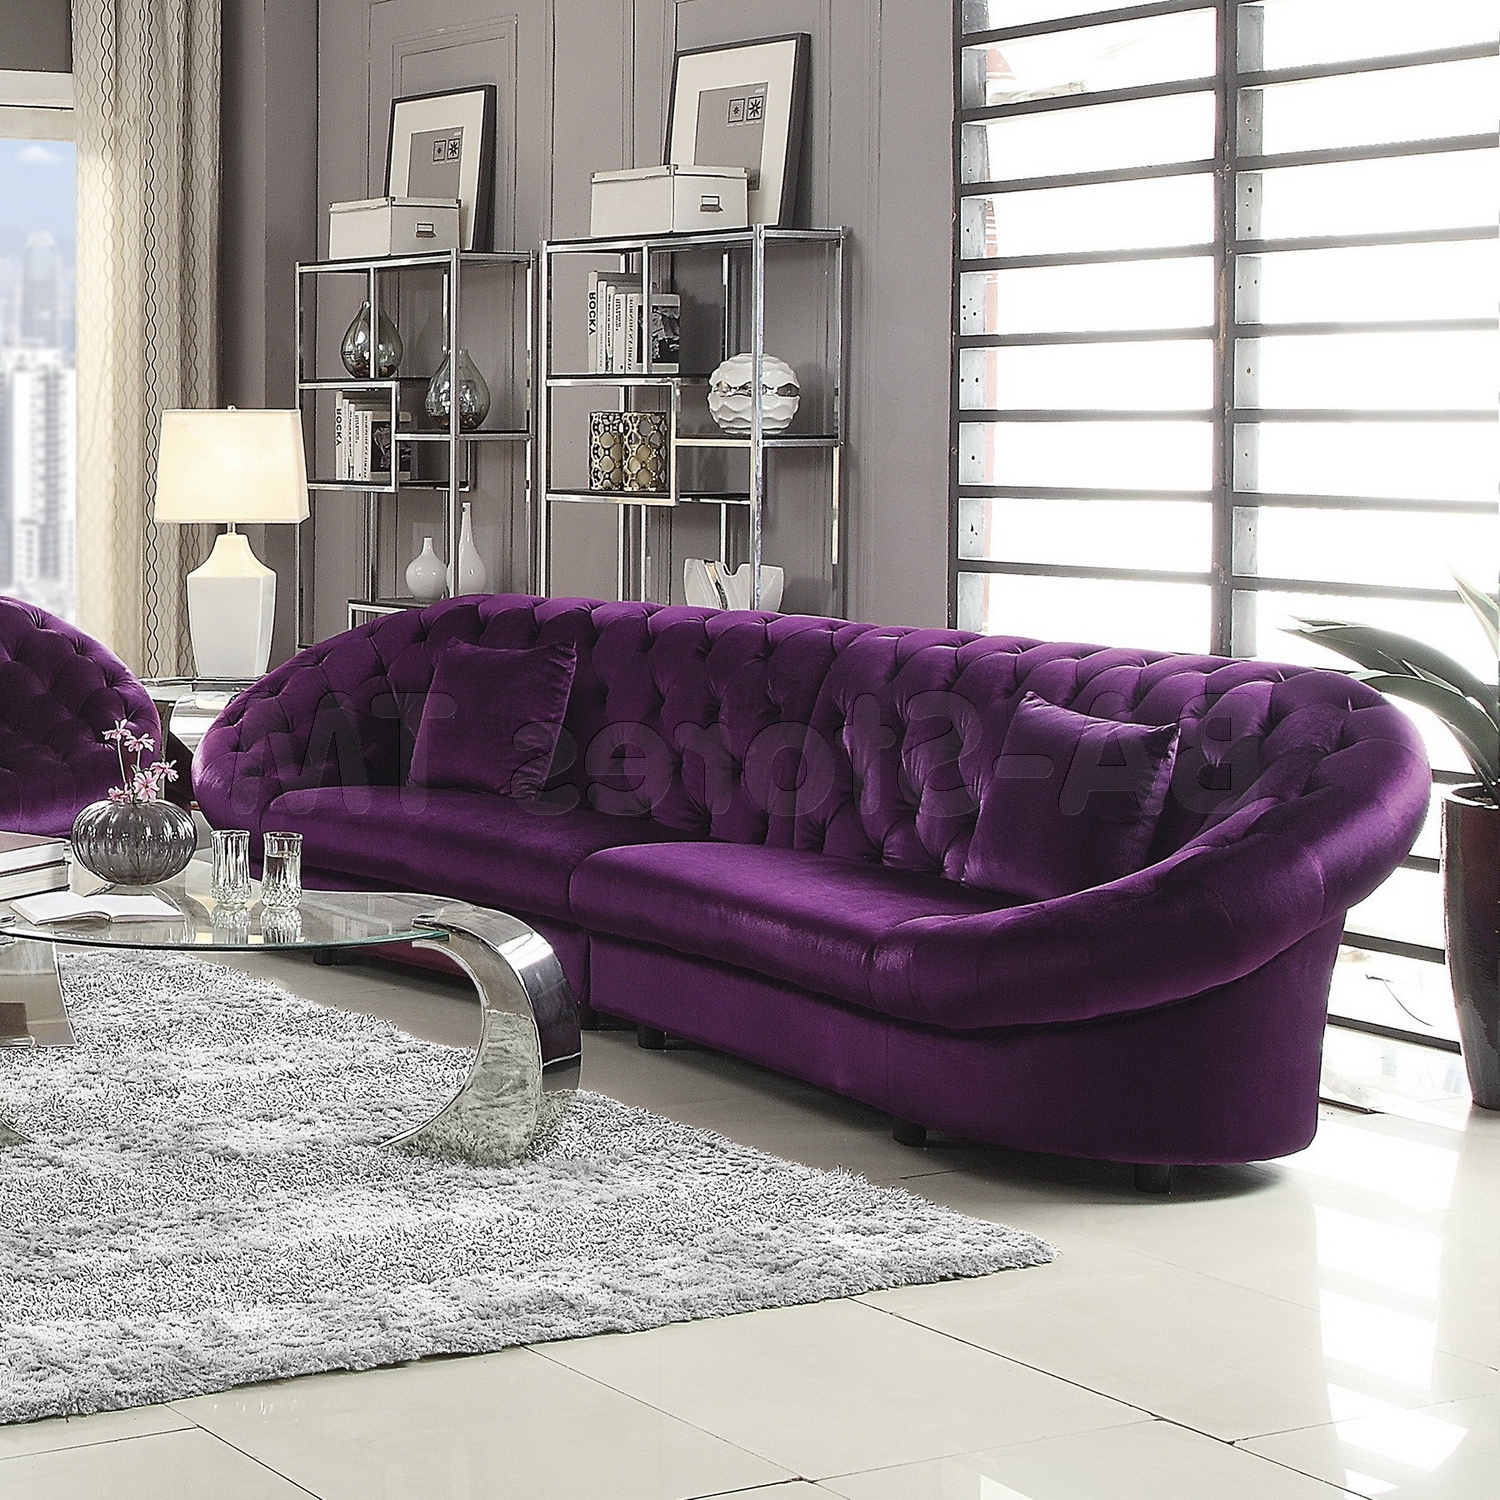 Favorite Sectional Sofas Nyc – Cleanupflorida In Nyc Sectional Sofas (View 5 of 20)